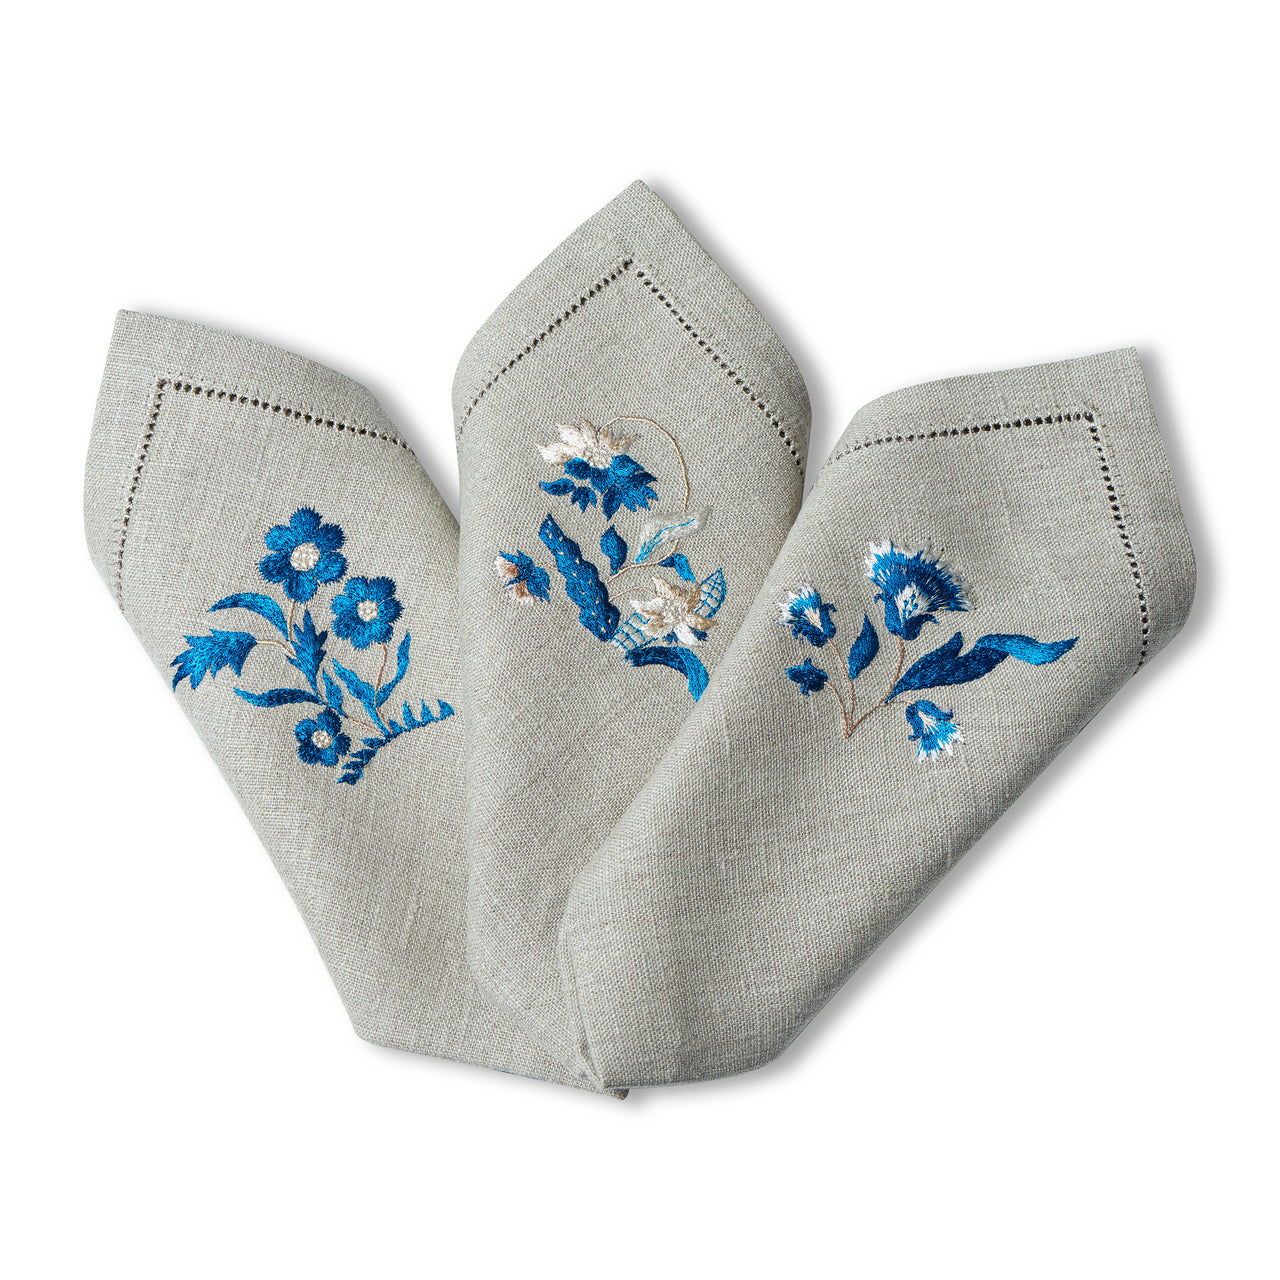 Posy Embroidered Napkins